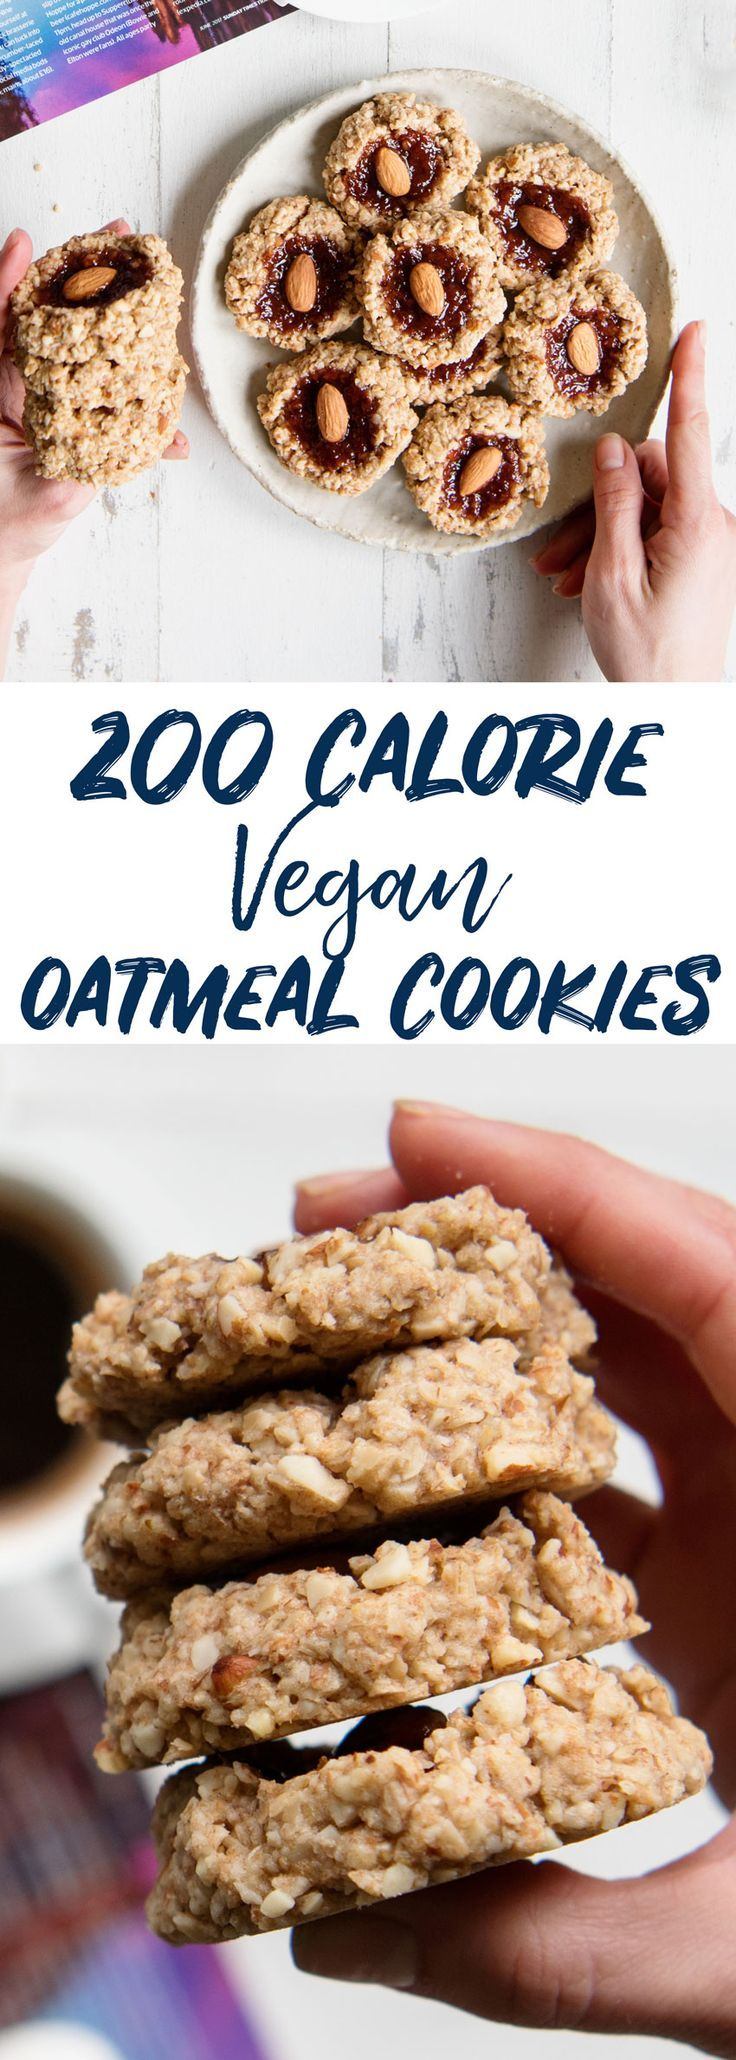 200 CALORIE Easy Vegan Cookies Recipe with Oatmeal and Almond Flour